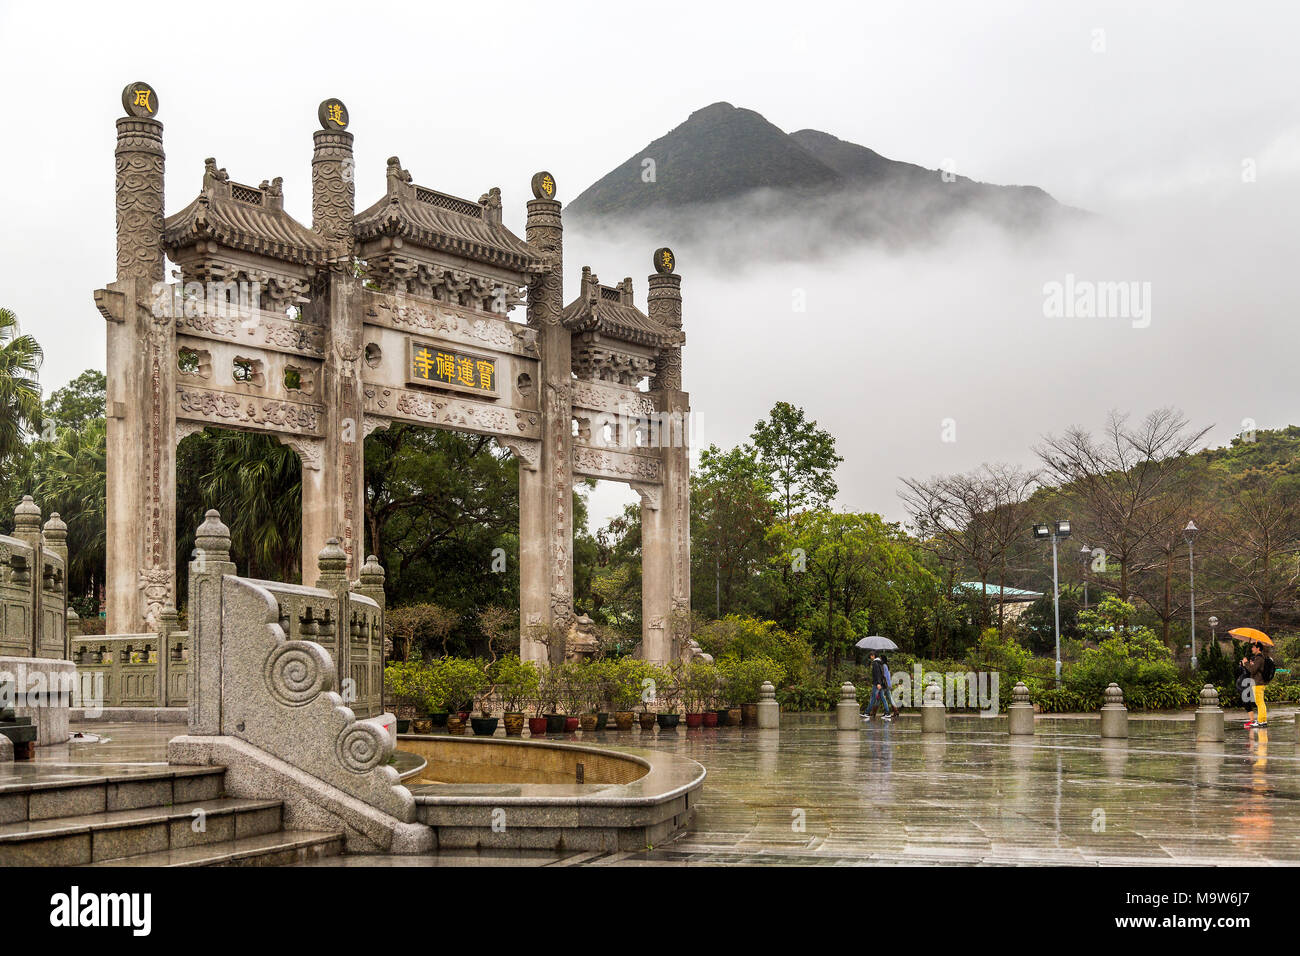 Po Lin Monastery Gate with the mist obscuring the mountain beyond. Located at Ngong Ping, Lantau Island, one of the Hong Kong Islands. Stock Photo